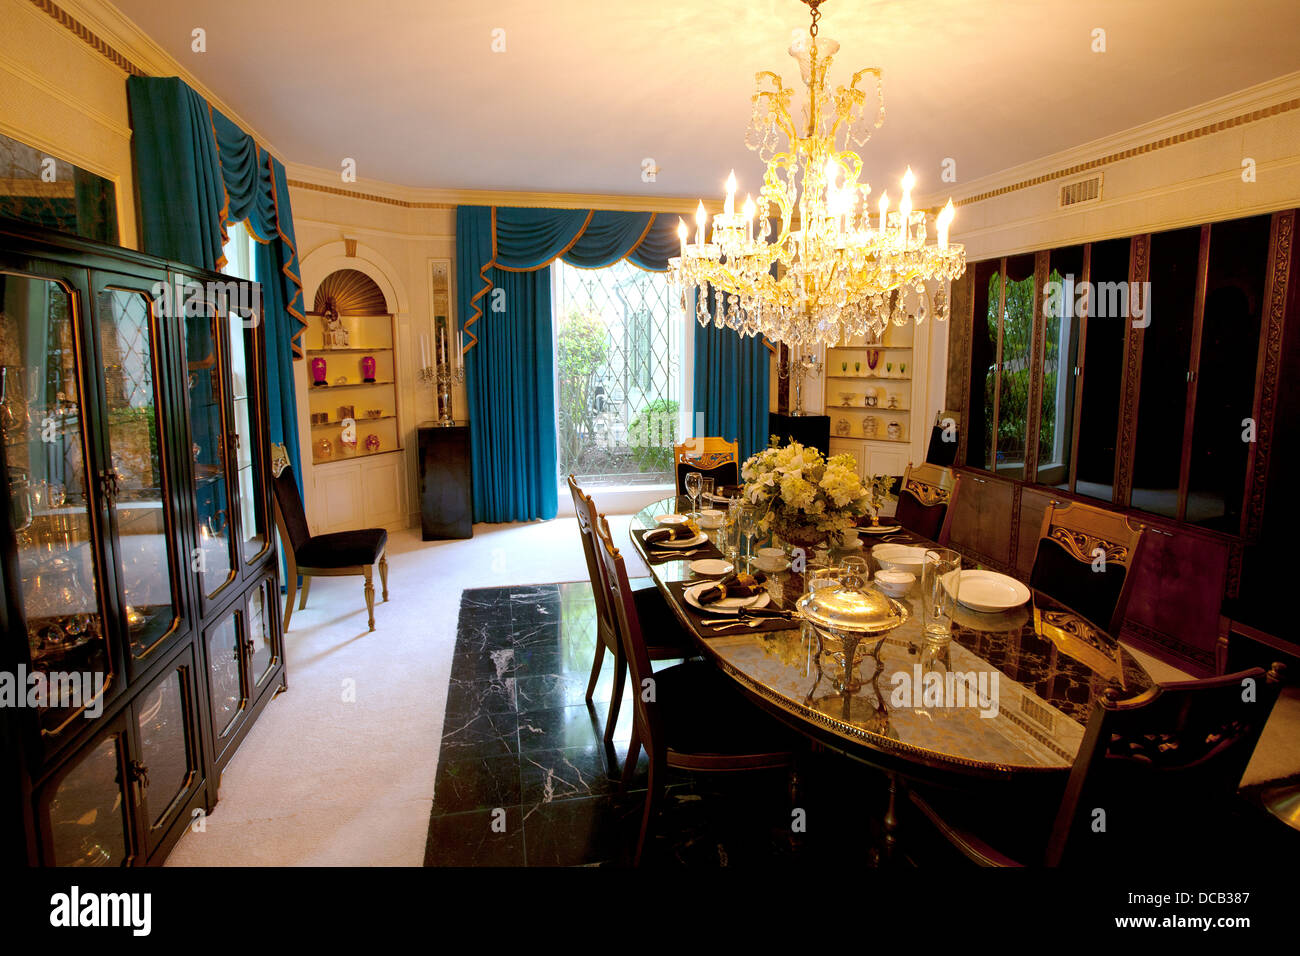 The Dining Room At Graceland Home Of Elvis Presley In Memphis Tennessee USA